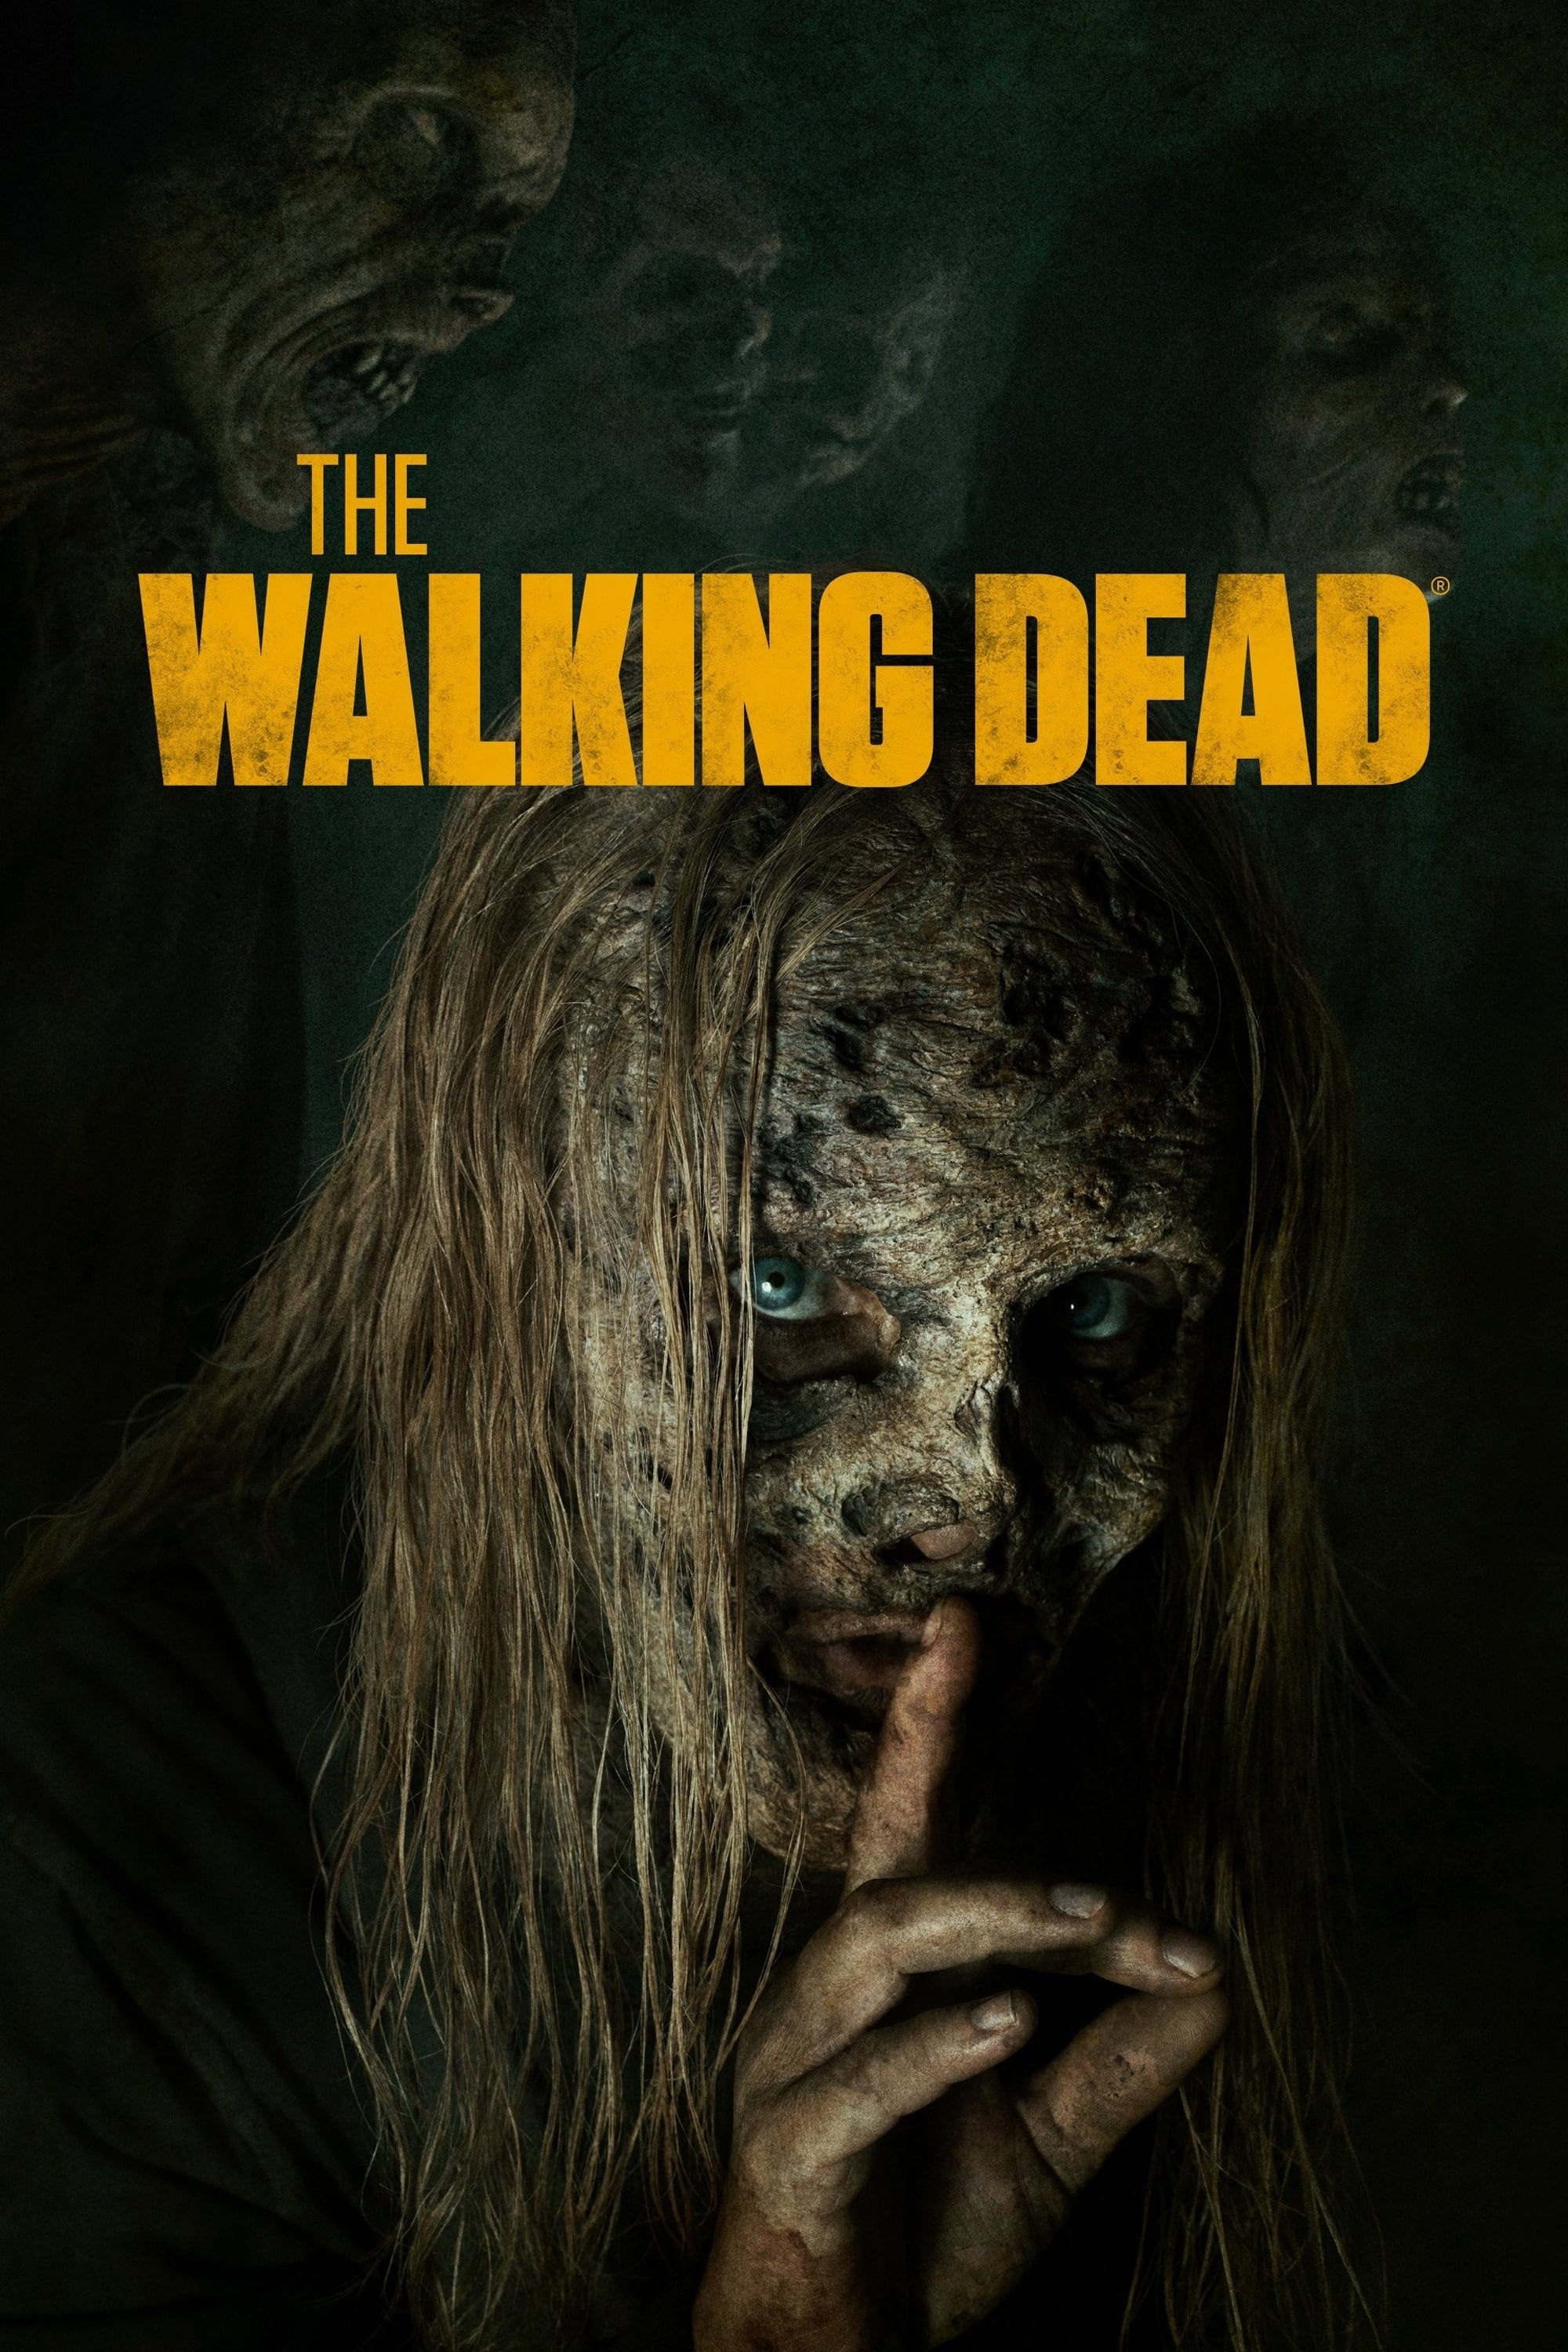 The Walking Dead 9ª Temporada (2018) Torrent - WEB-DL 720p e 1080p Dublado / Dual Áudio e Legendado Download